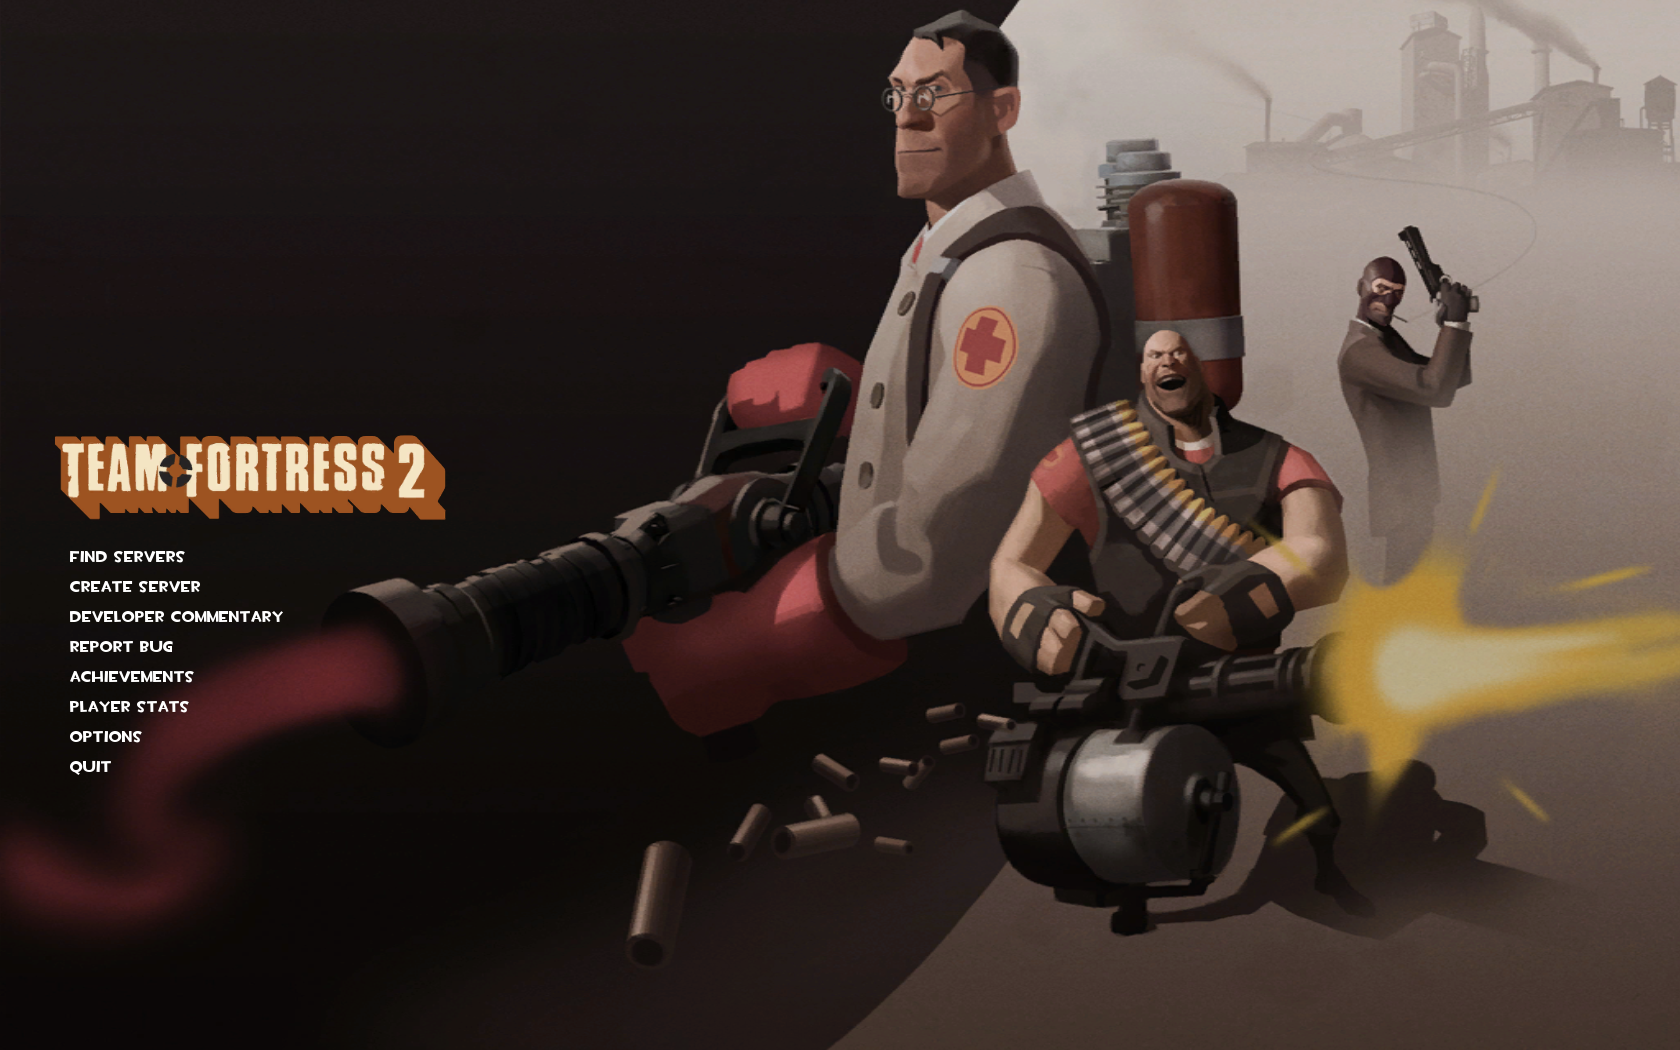 How To: Run Team Fortress 2 (TF2), Portal, Half-Life 2, HL2